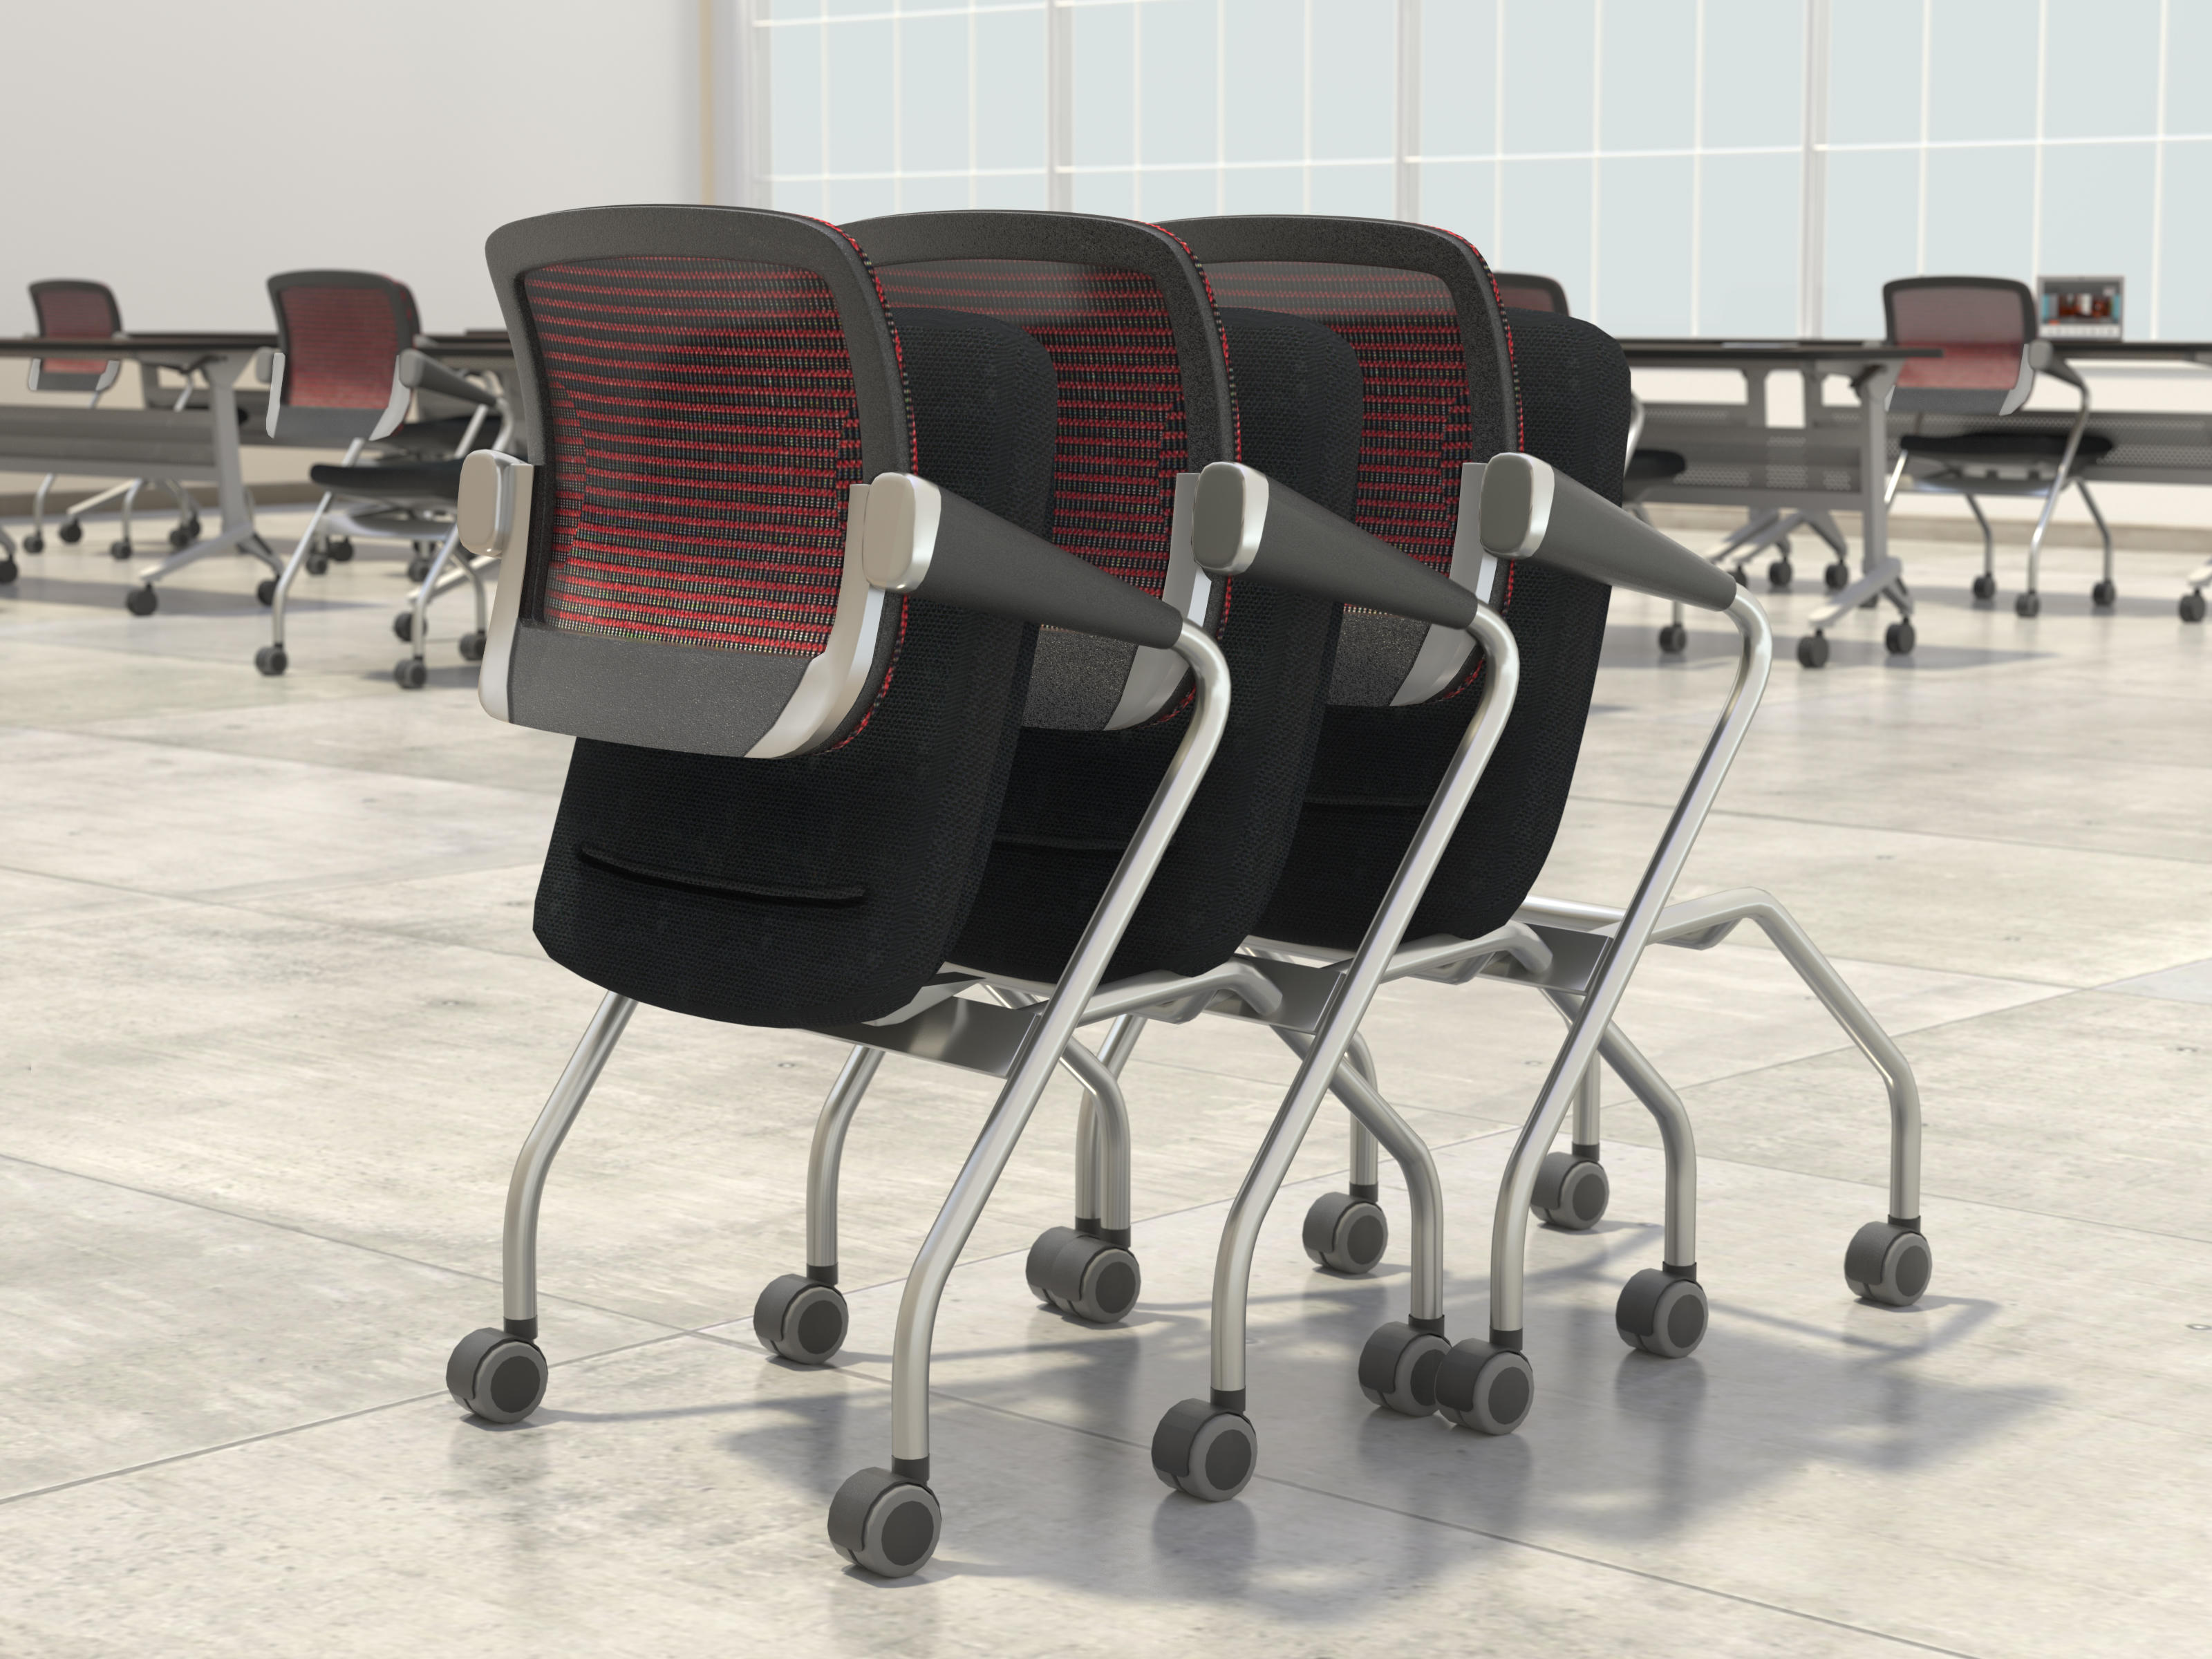 office chairs unlimited louis 15 style chair beaver falls pennsylvania pa